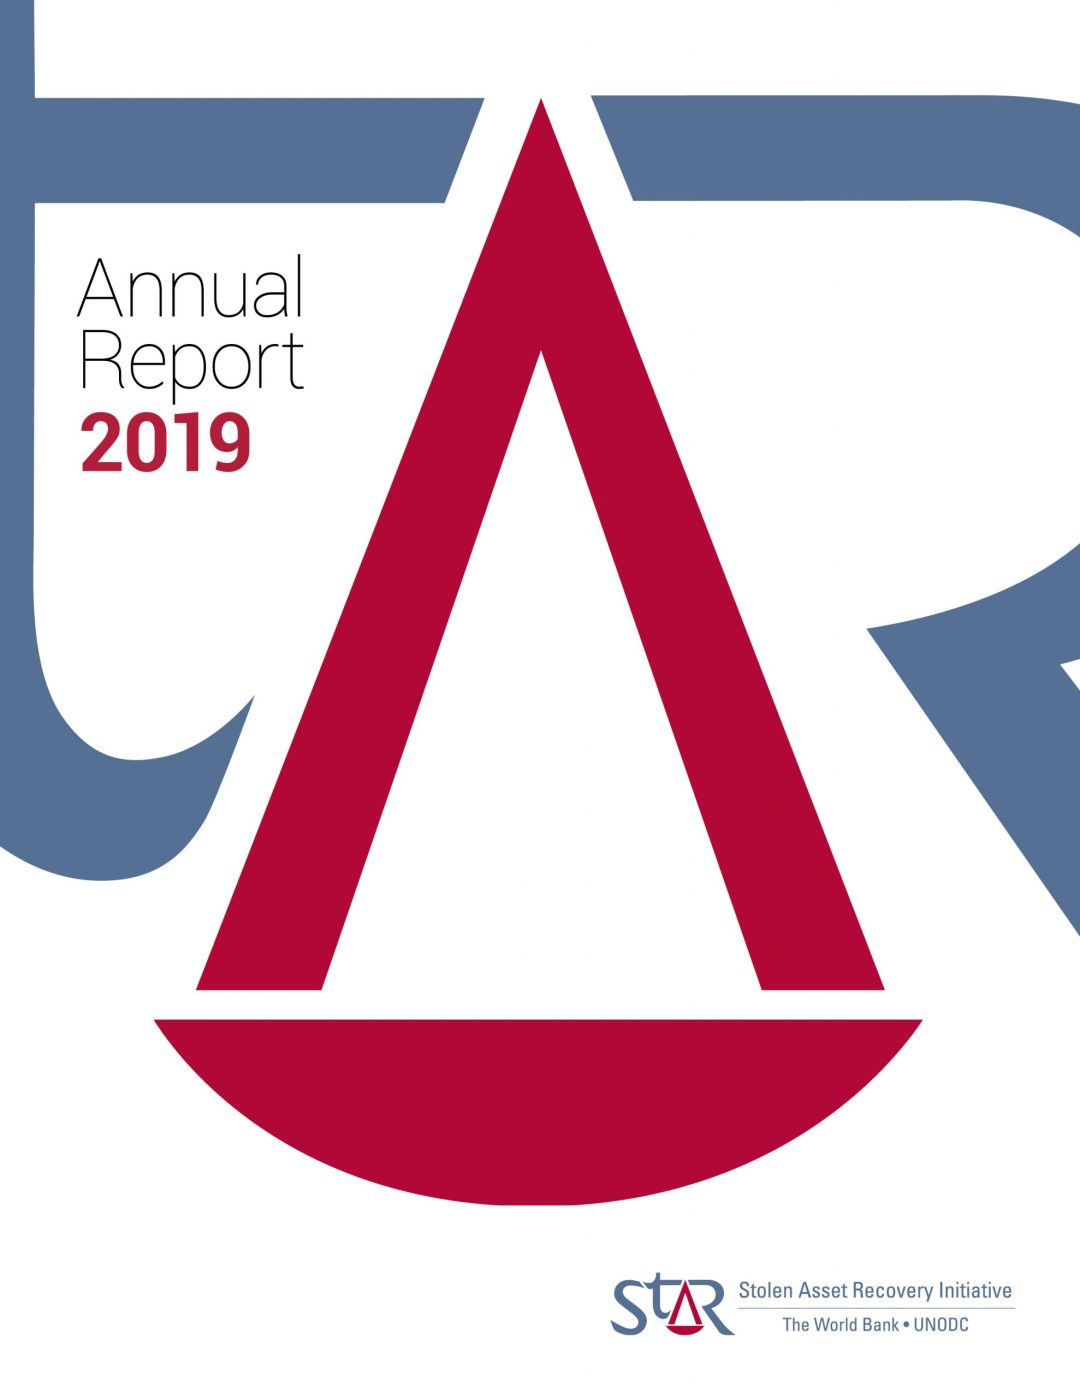 Annual report cover showing detail of logo